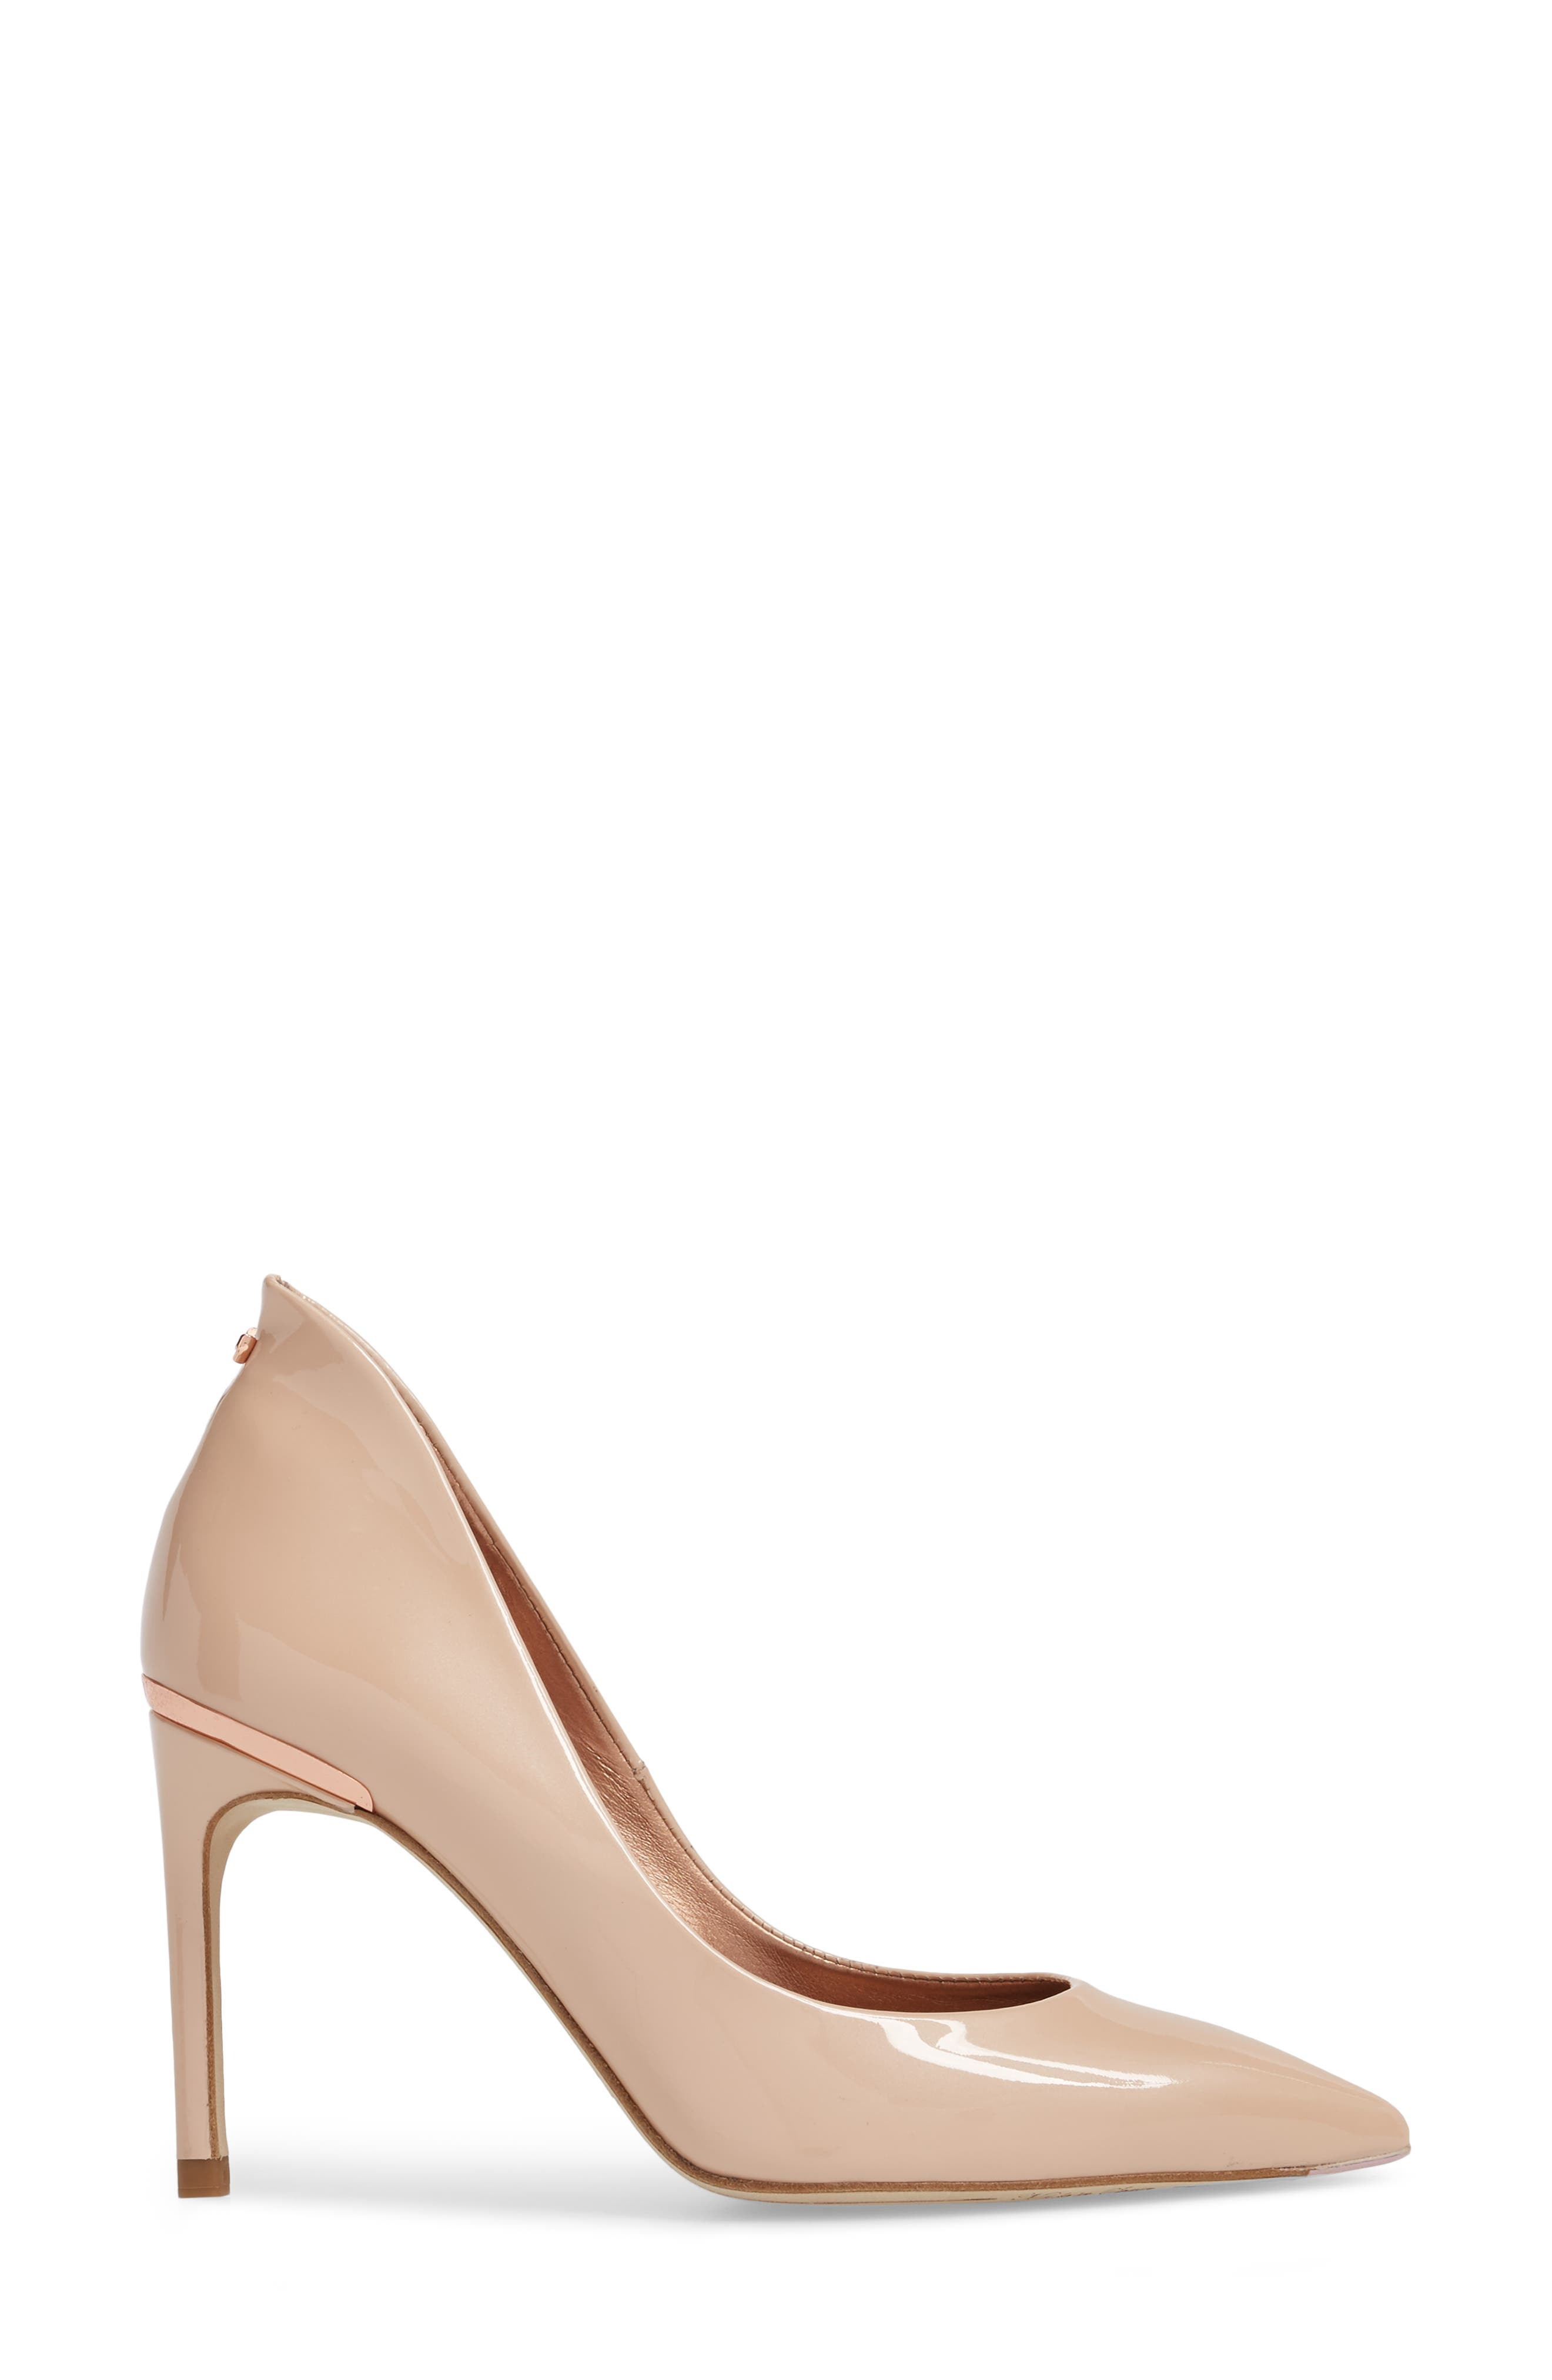 Savio Pump,                             Alternate thumbnail 3, color,                             NUDE PATENT LEATHER